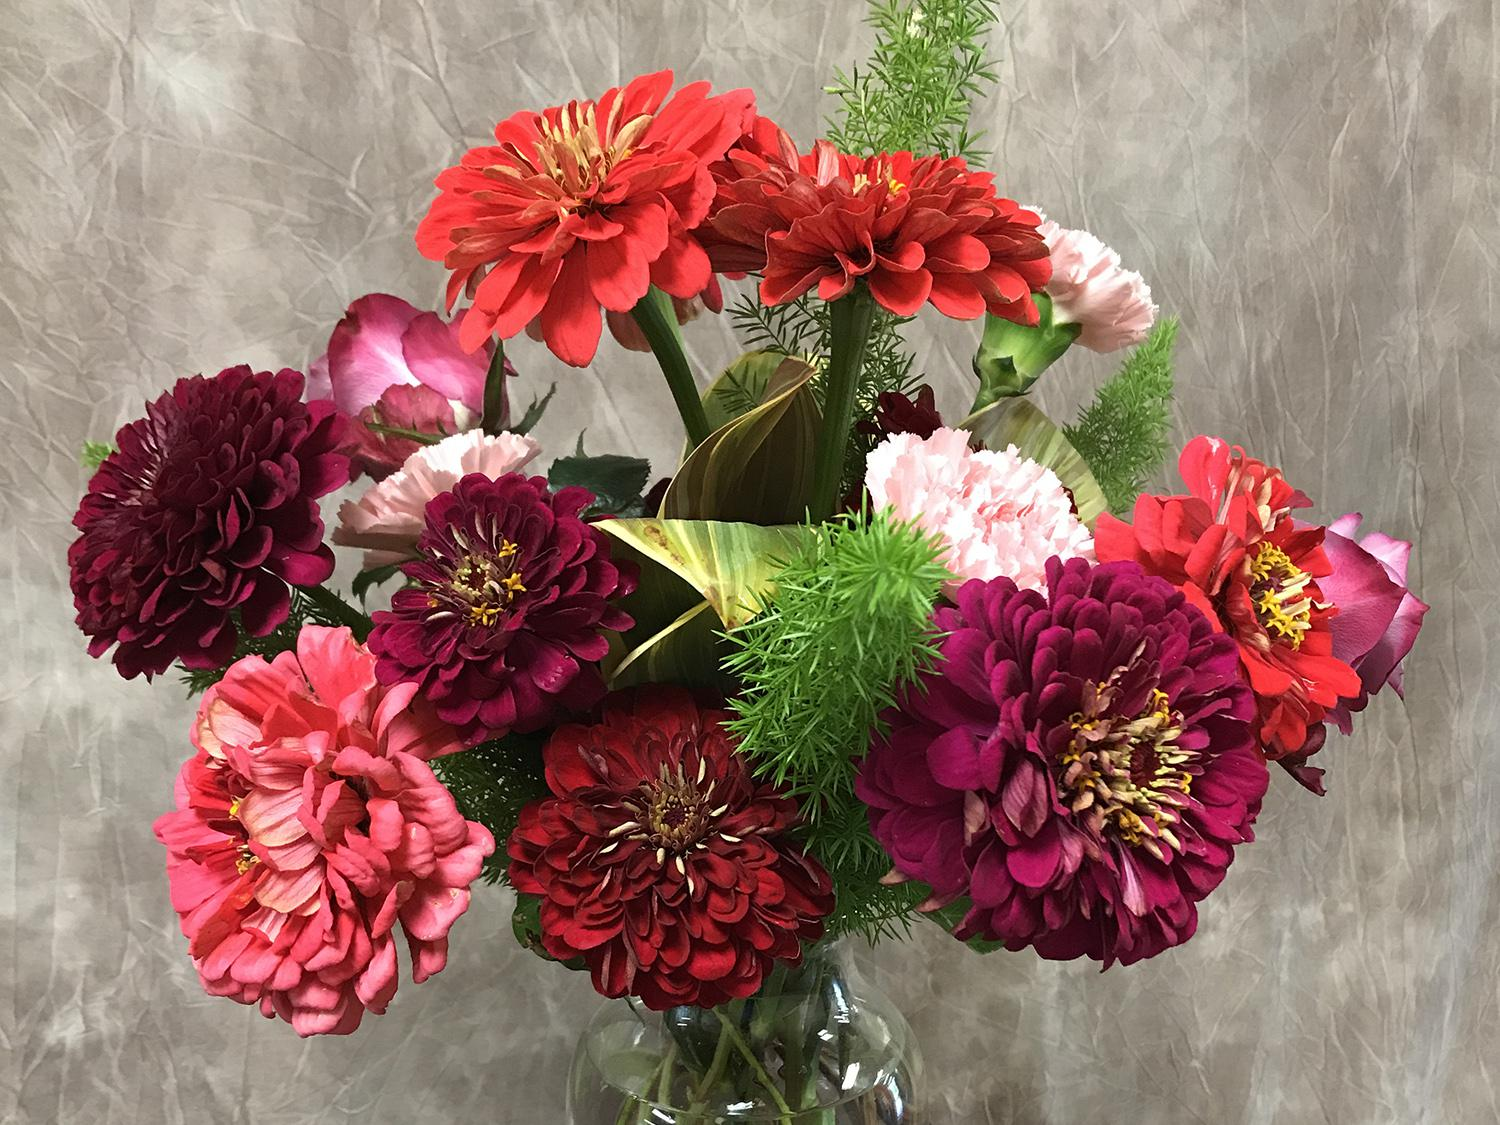 Jim DelPrince, Mississippi State University Extension Service floral specialist, will teach professional florists and entrepreneurs how to design for weddings during a workshop on Aug. 7 and 8. (Photo by MSU Extension Service/Jim DelPrince)